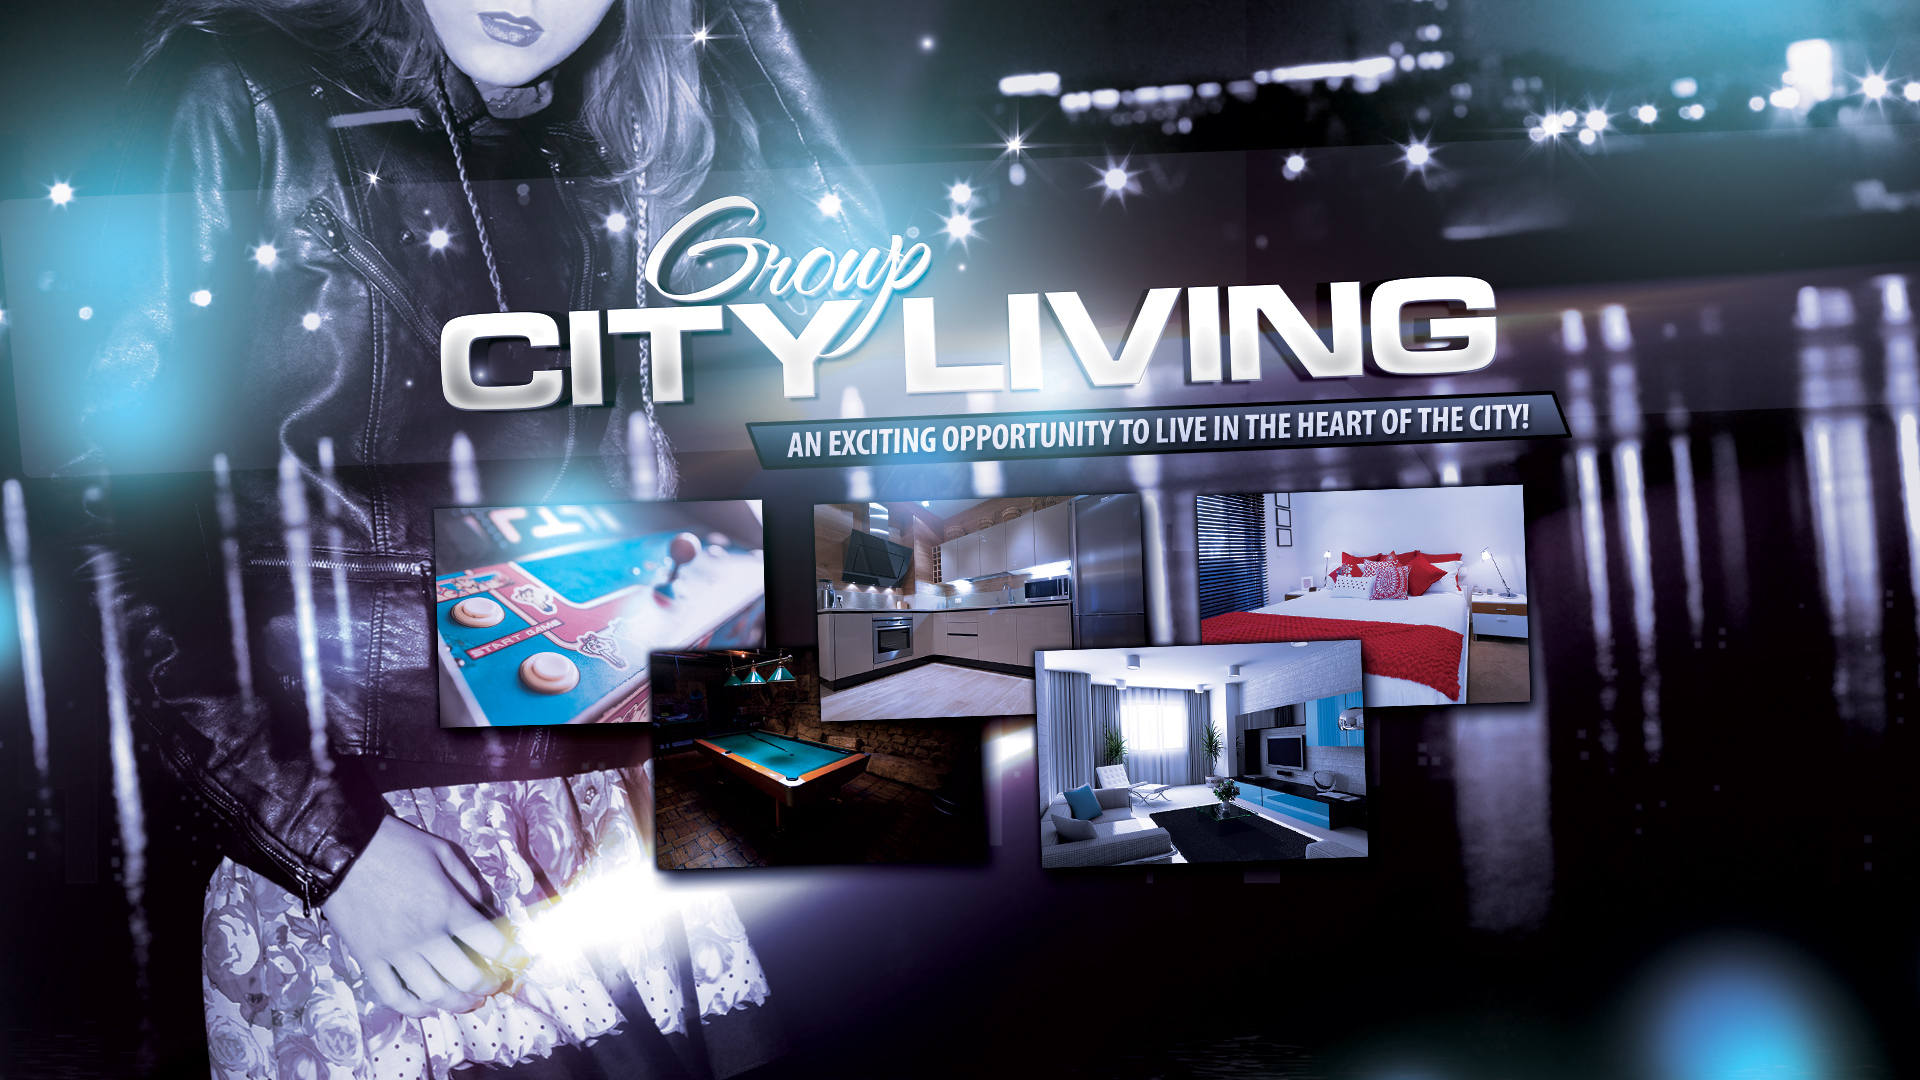 GROUP CITY LIVING